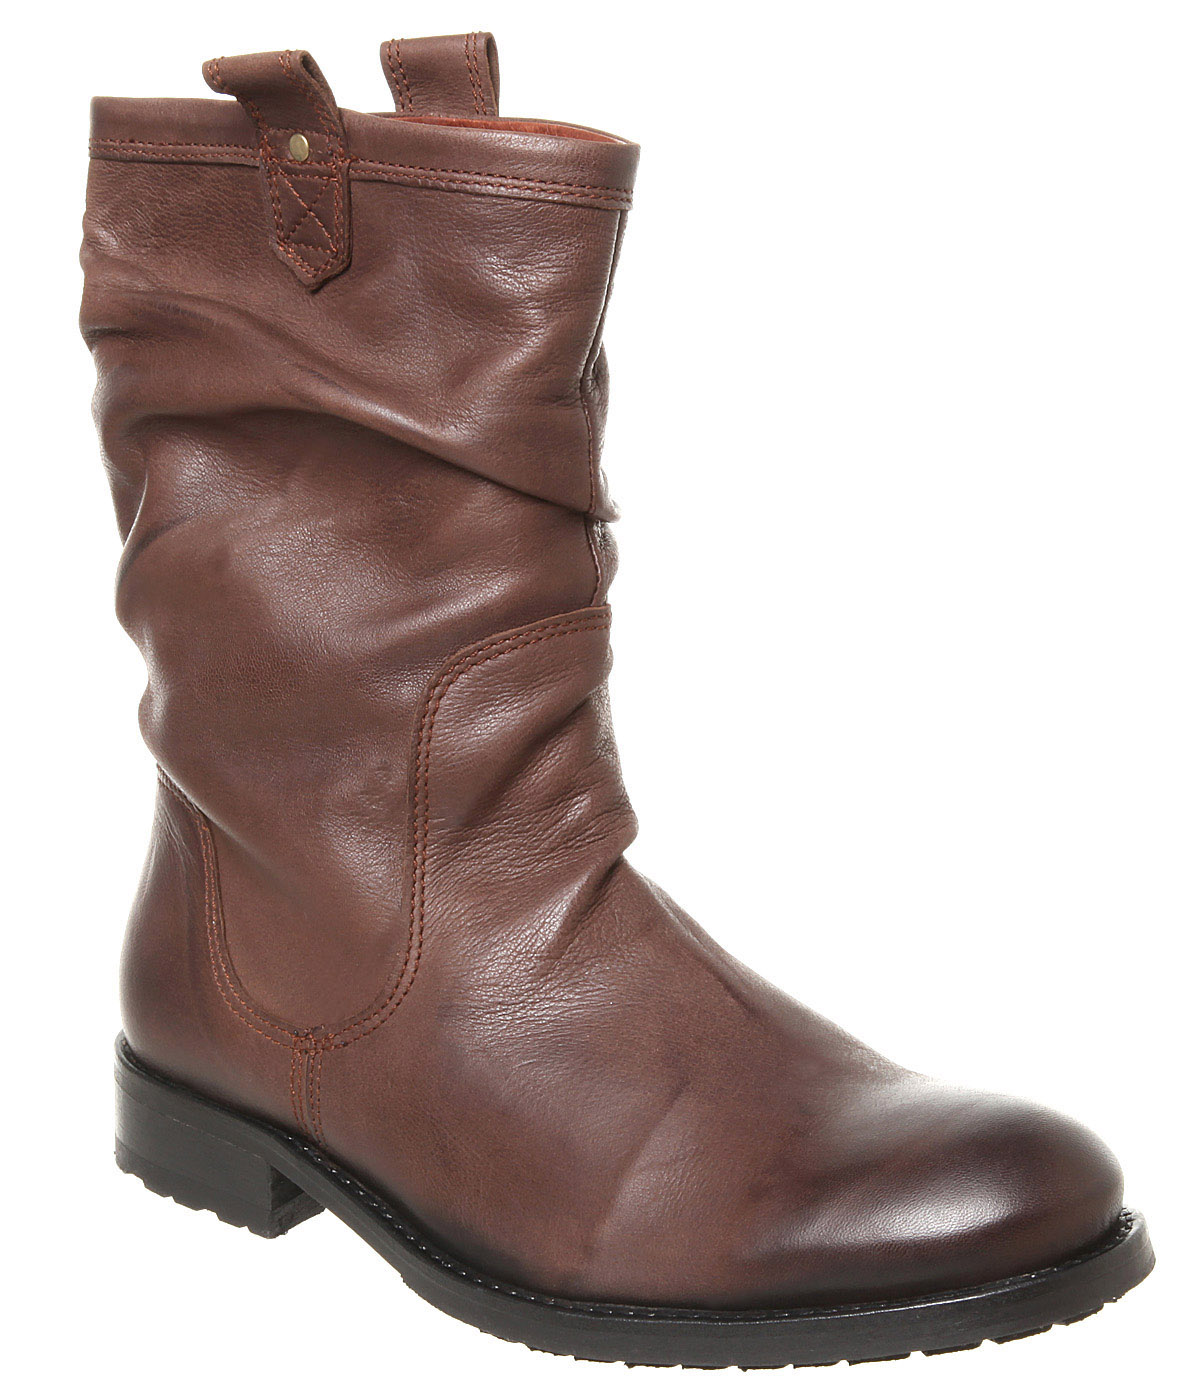 mens poste jin pull on boot choc leather boots ebay